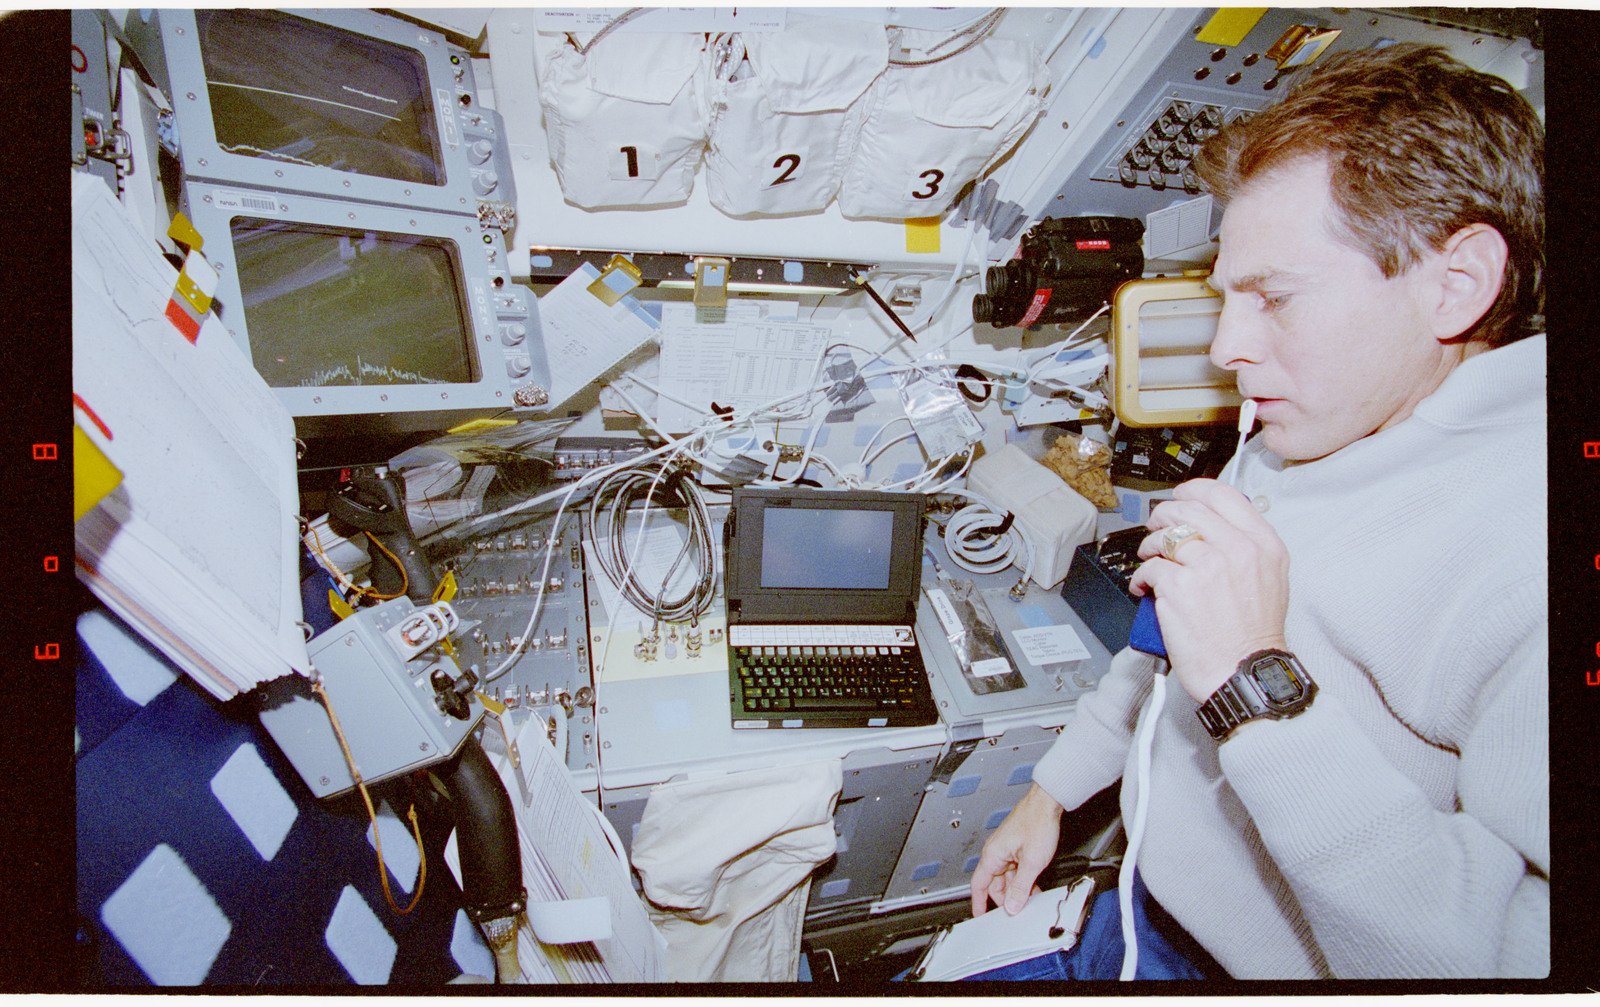 STS067-318-001 - STS-067 - ASTRO-2, Durrance communicates with the ground during experiment OPS